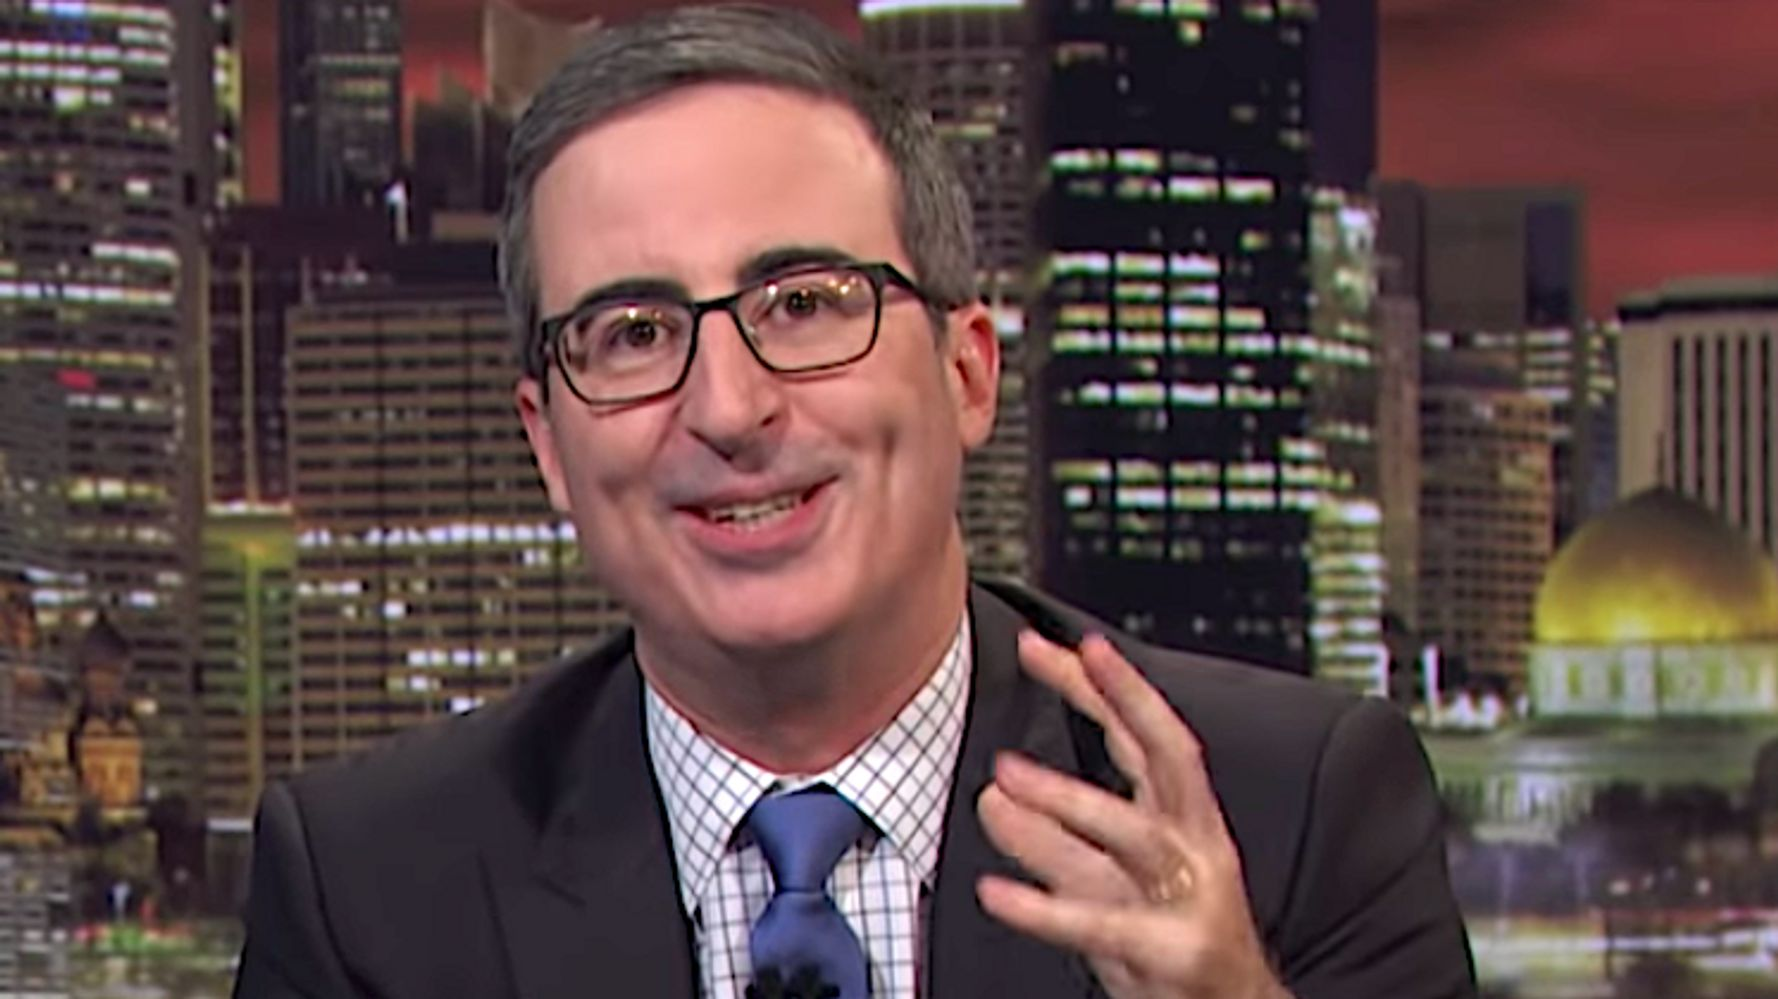 Westlake Legal Group 5d91c8232100003100fe1d48 John Oliver Offers Seriously Funny Hope For Trump Impeachment